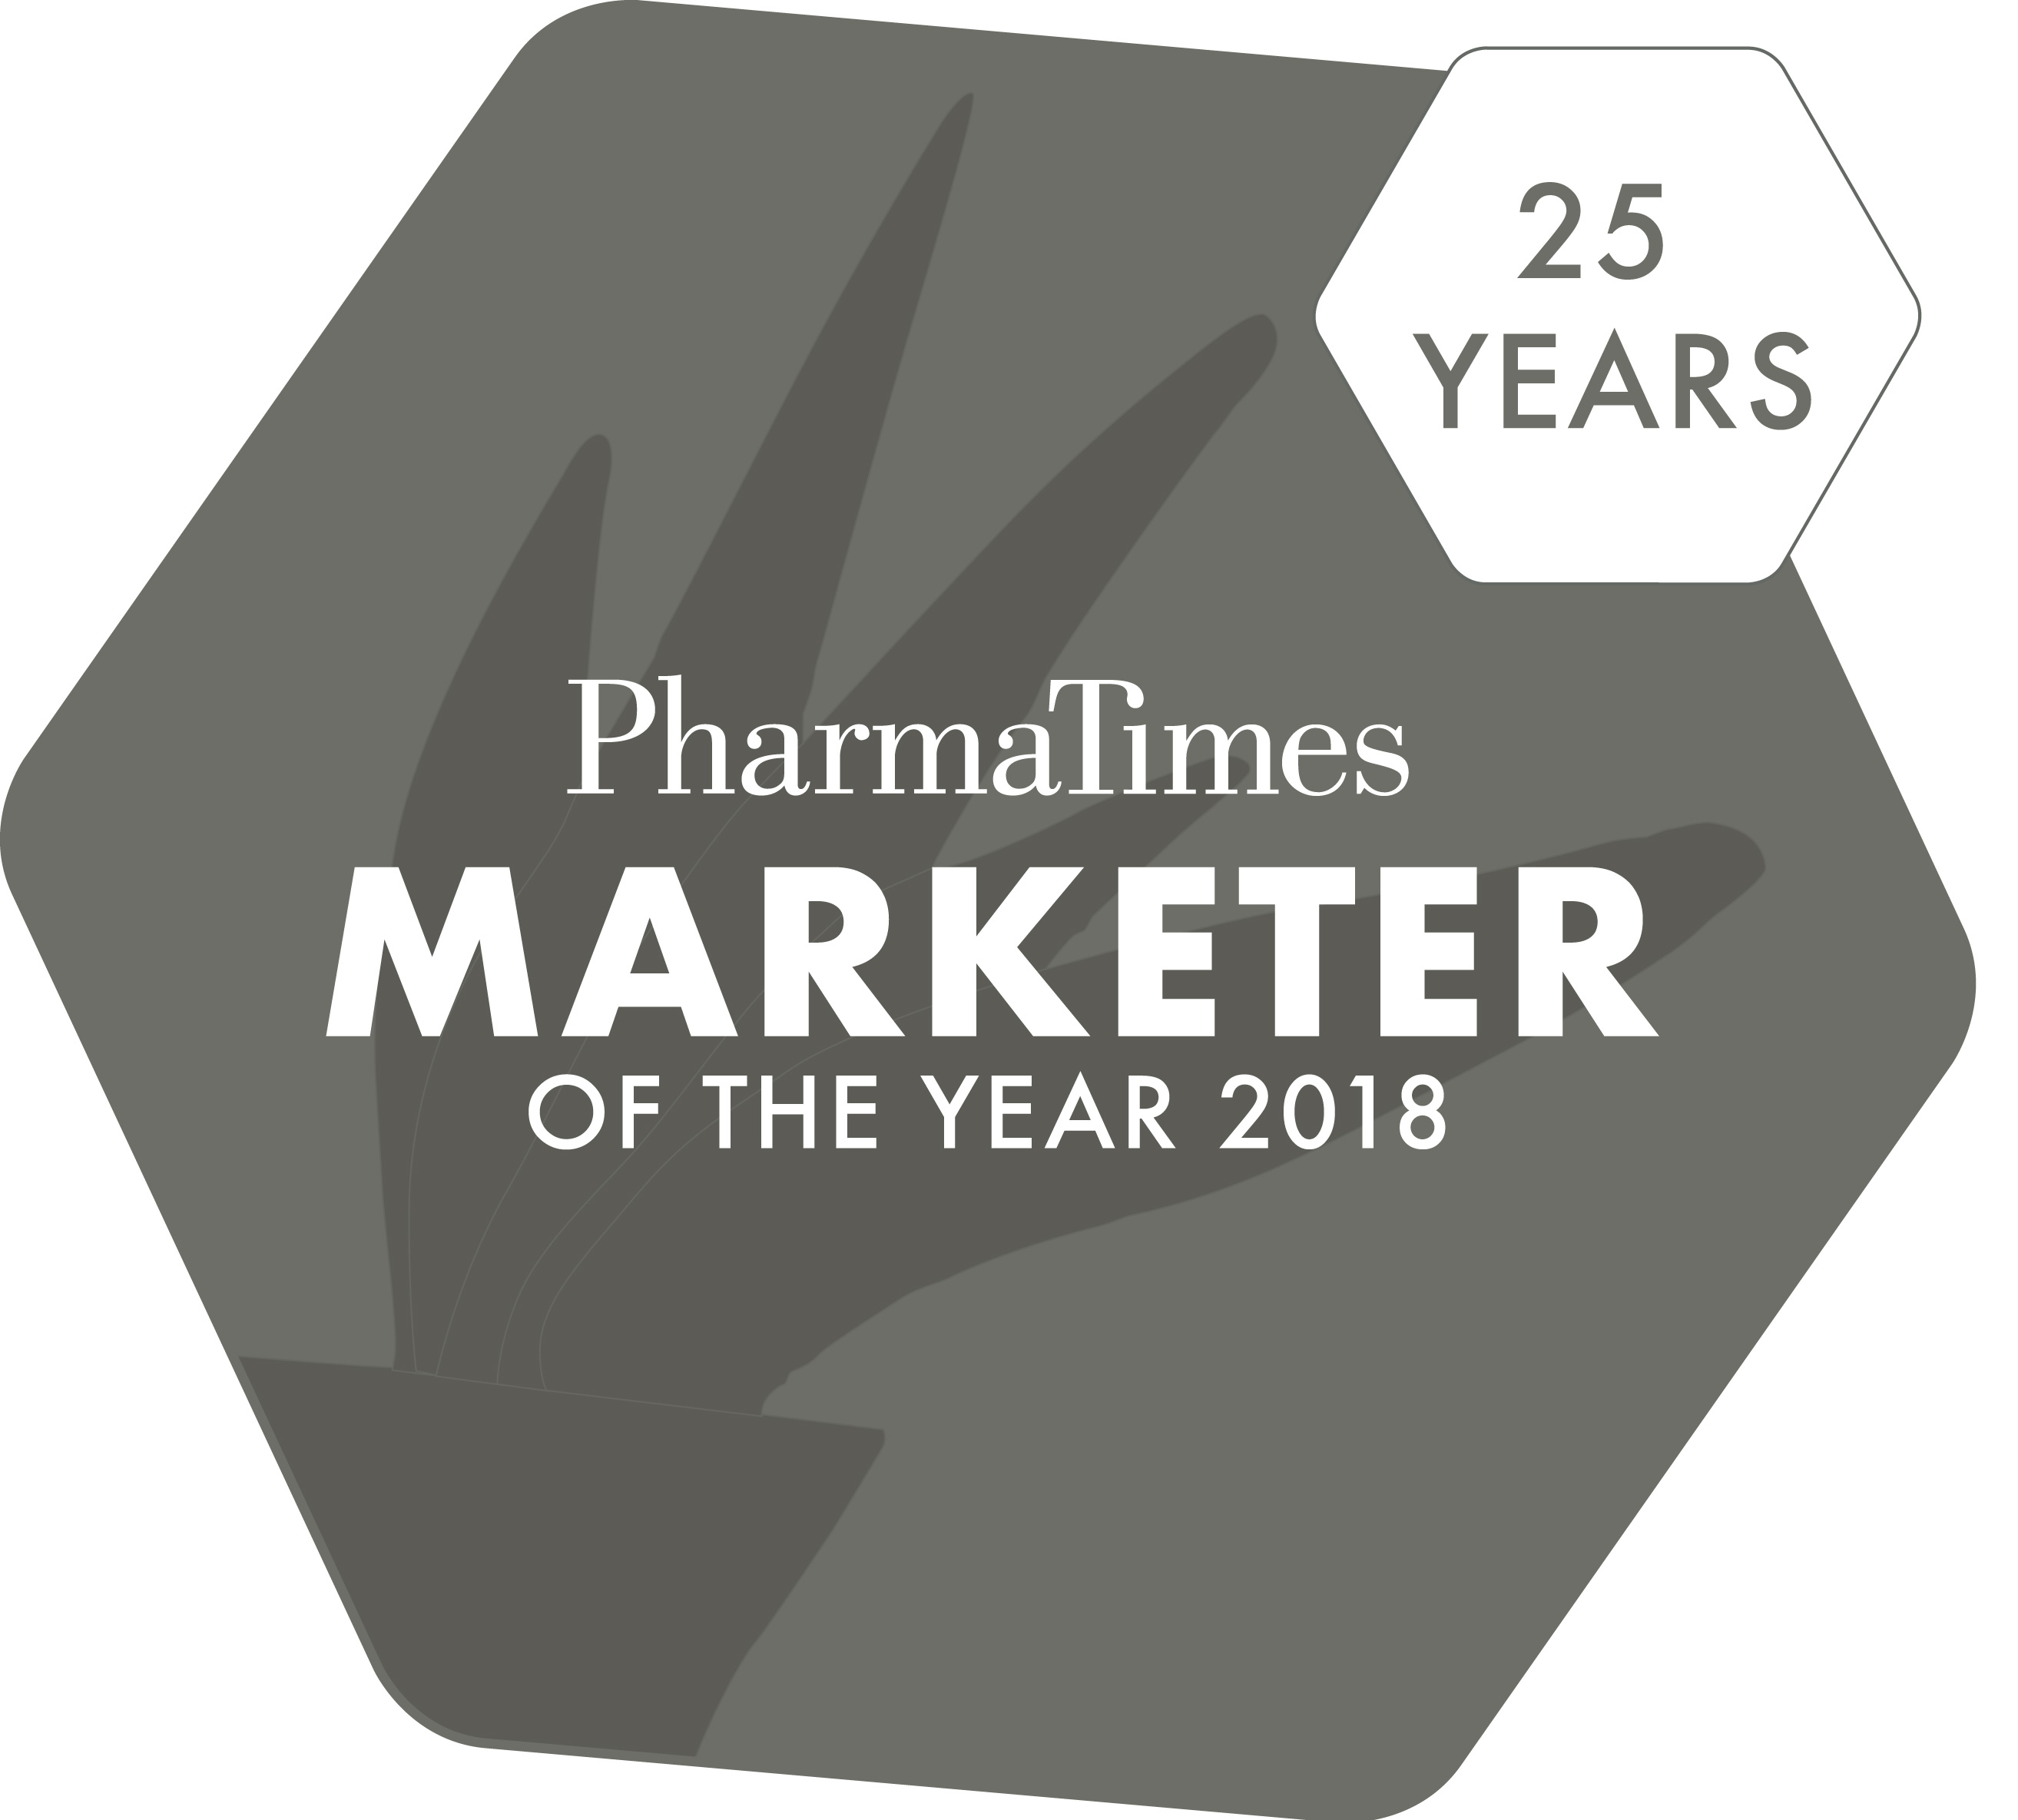 Thumbnail image for PharmaTimes Marketer of the Year 2018 is open for entry!